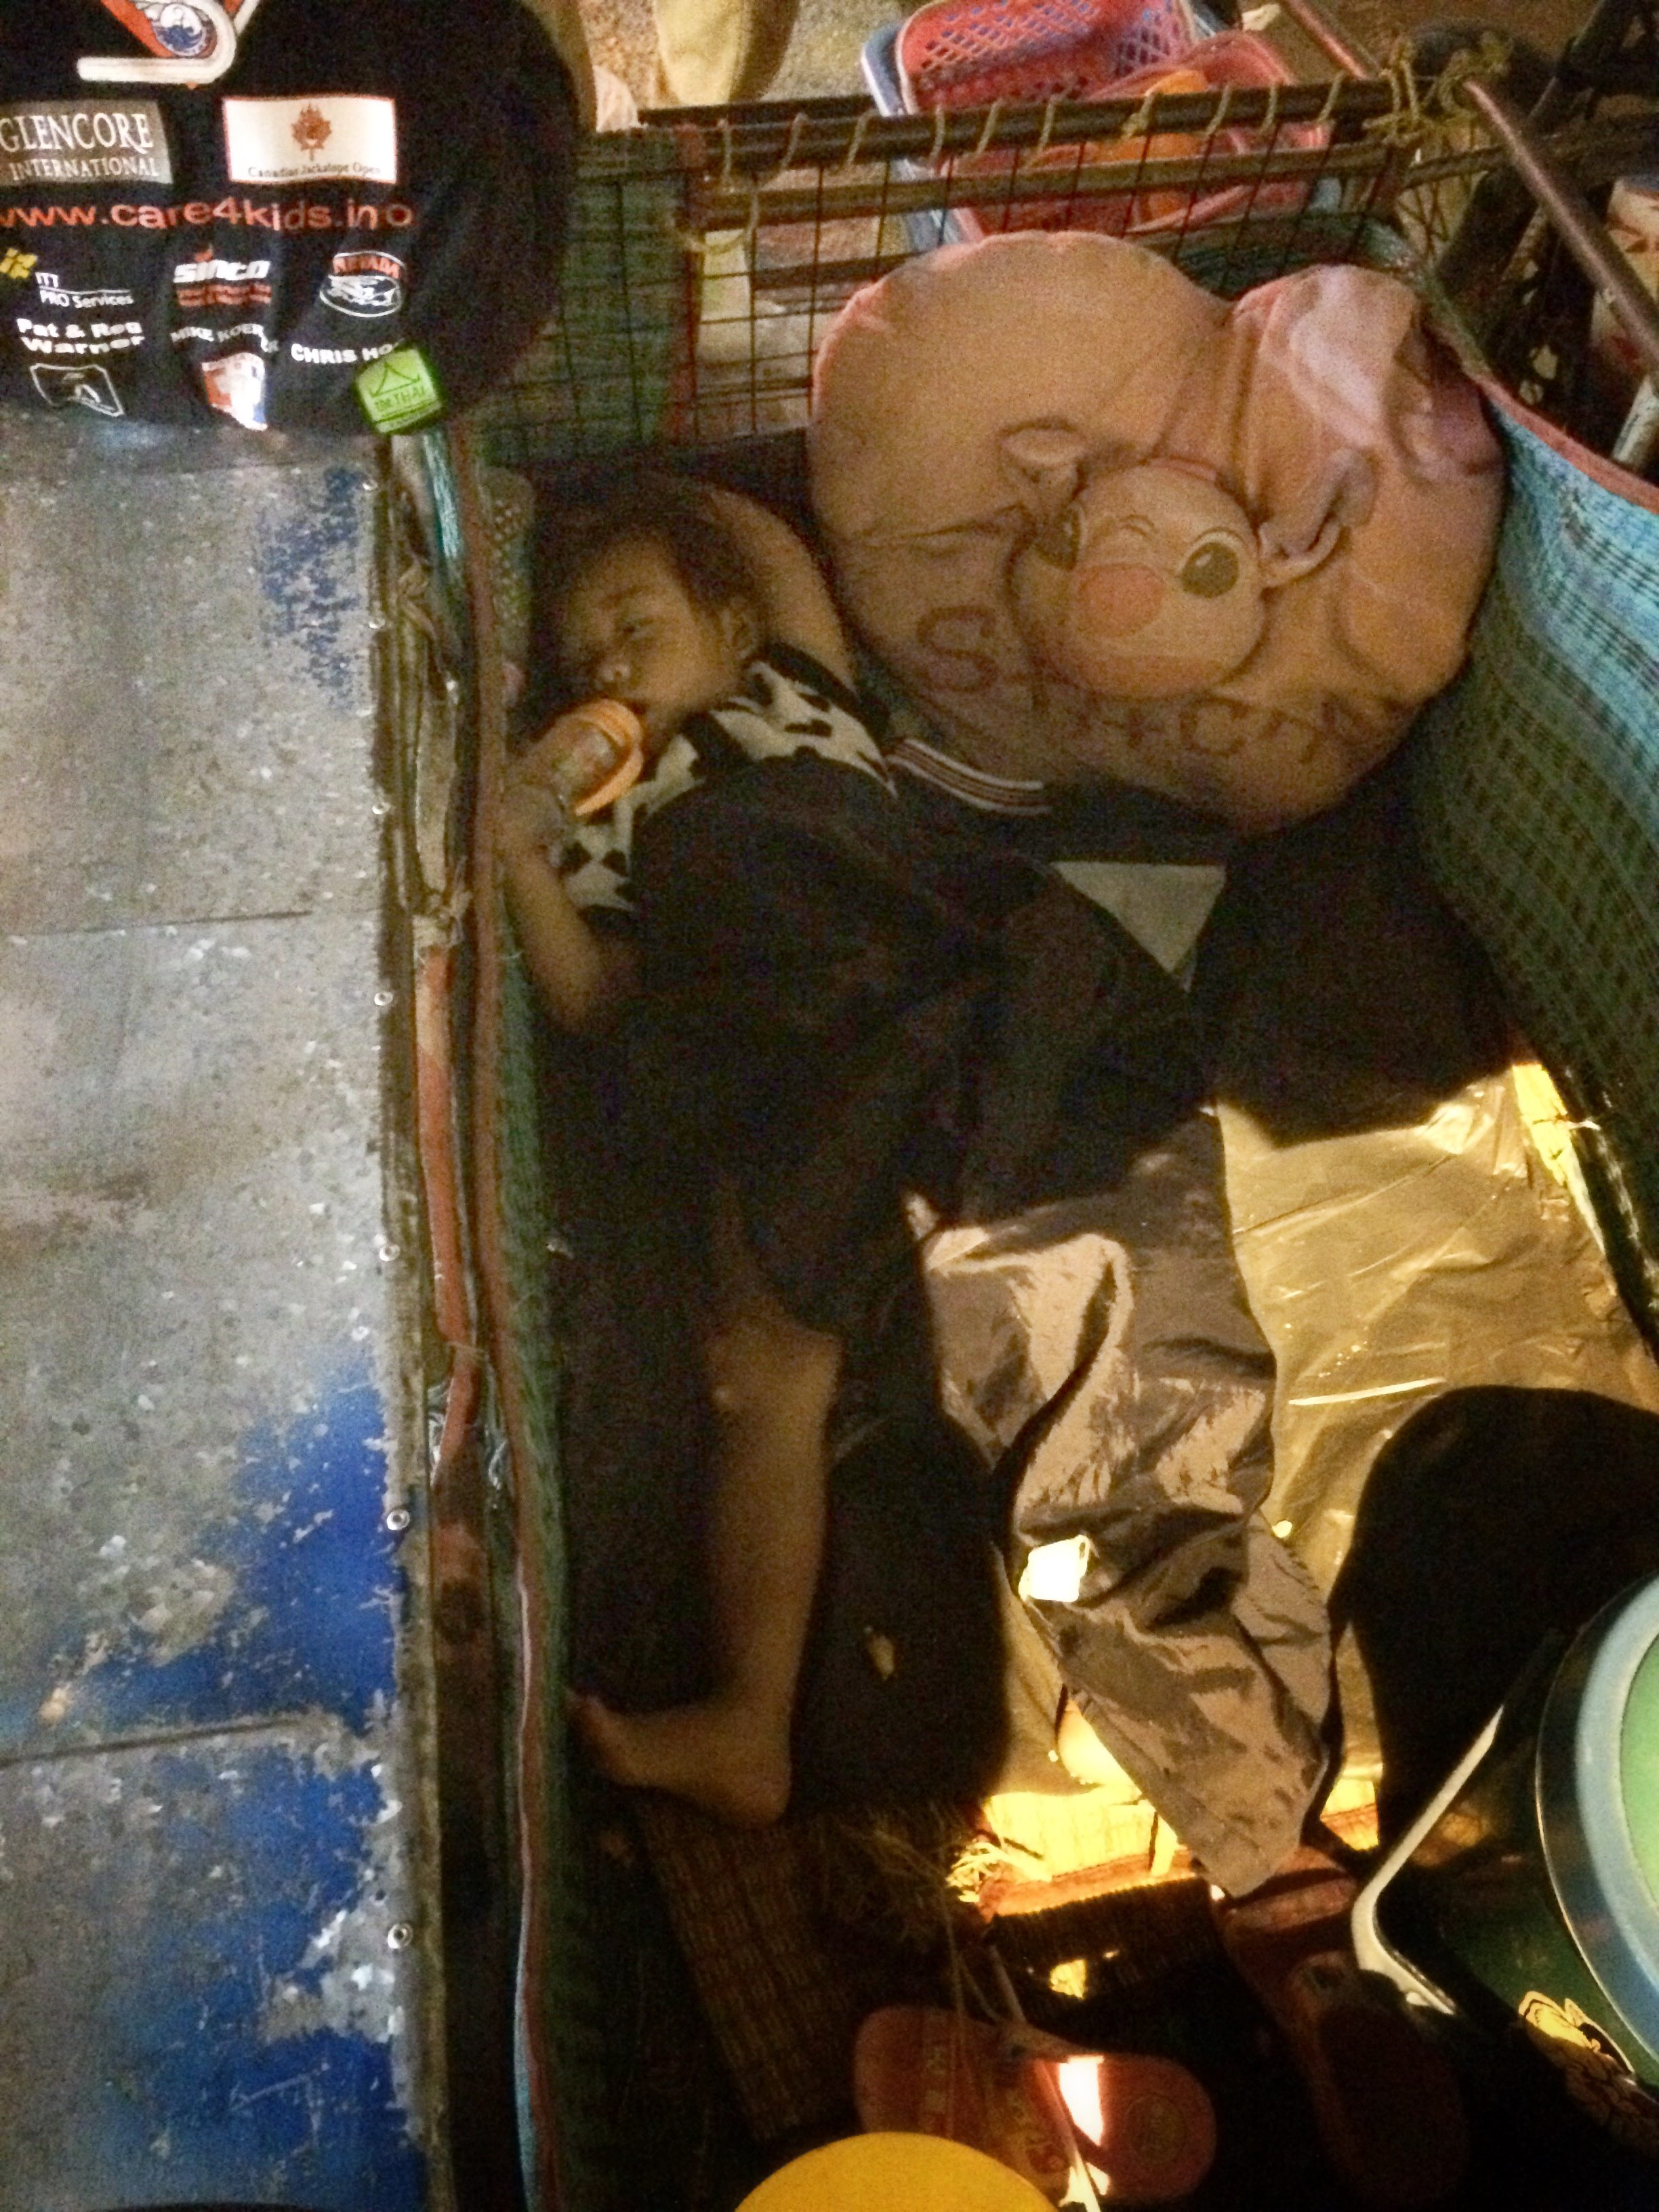 baby in the dumpster